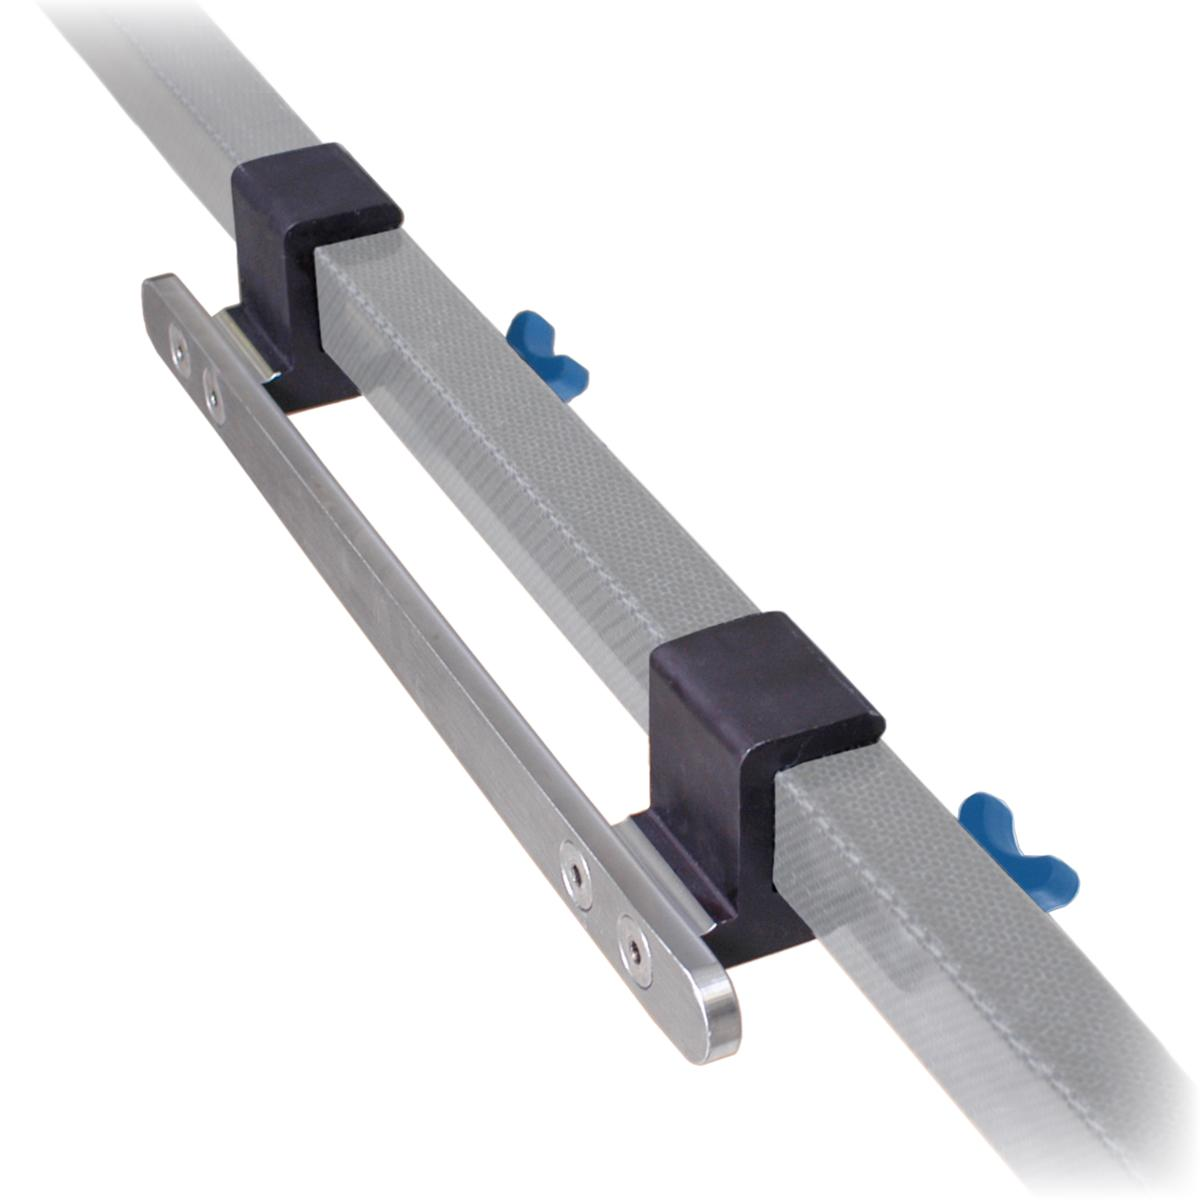 Flex Frame Long Accessory Rail diagonal view